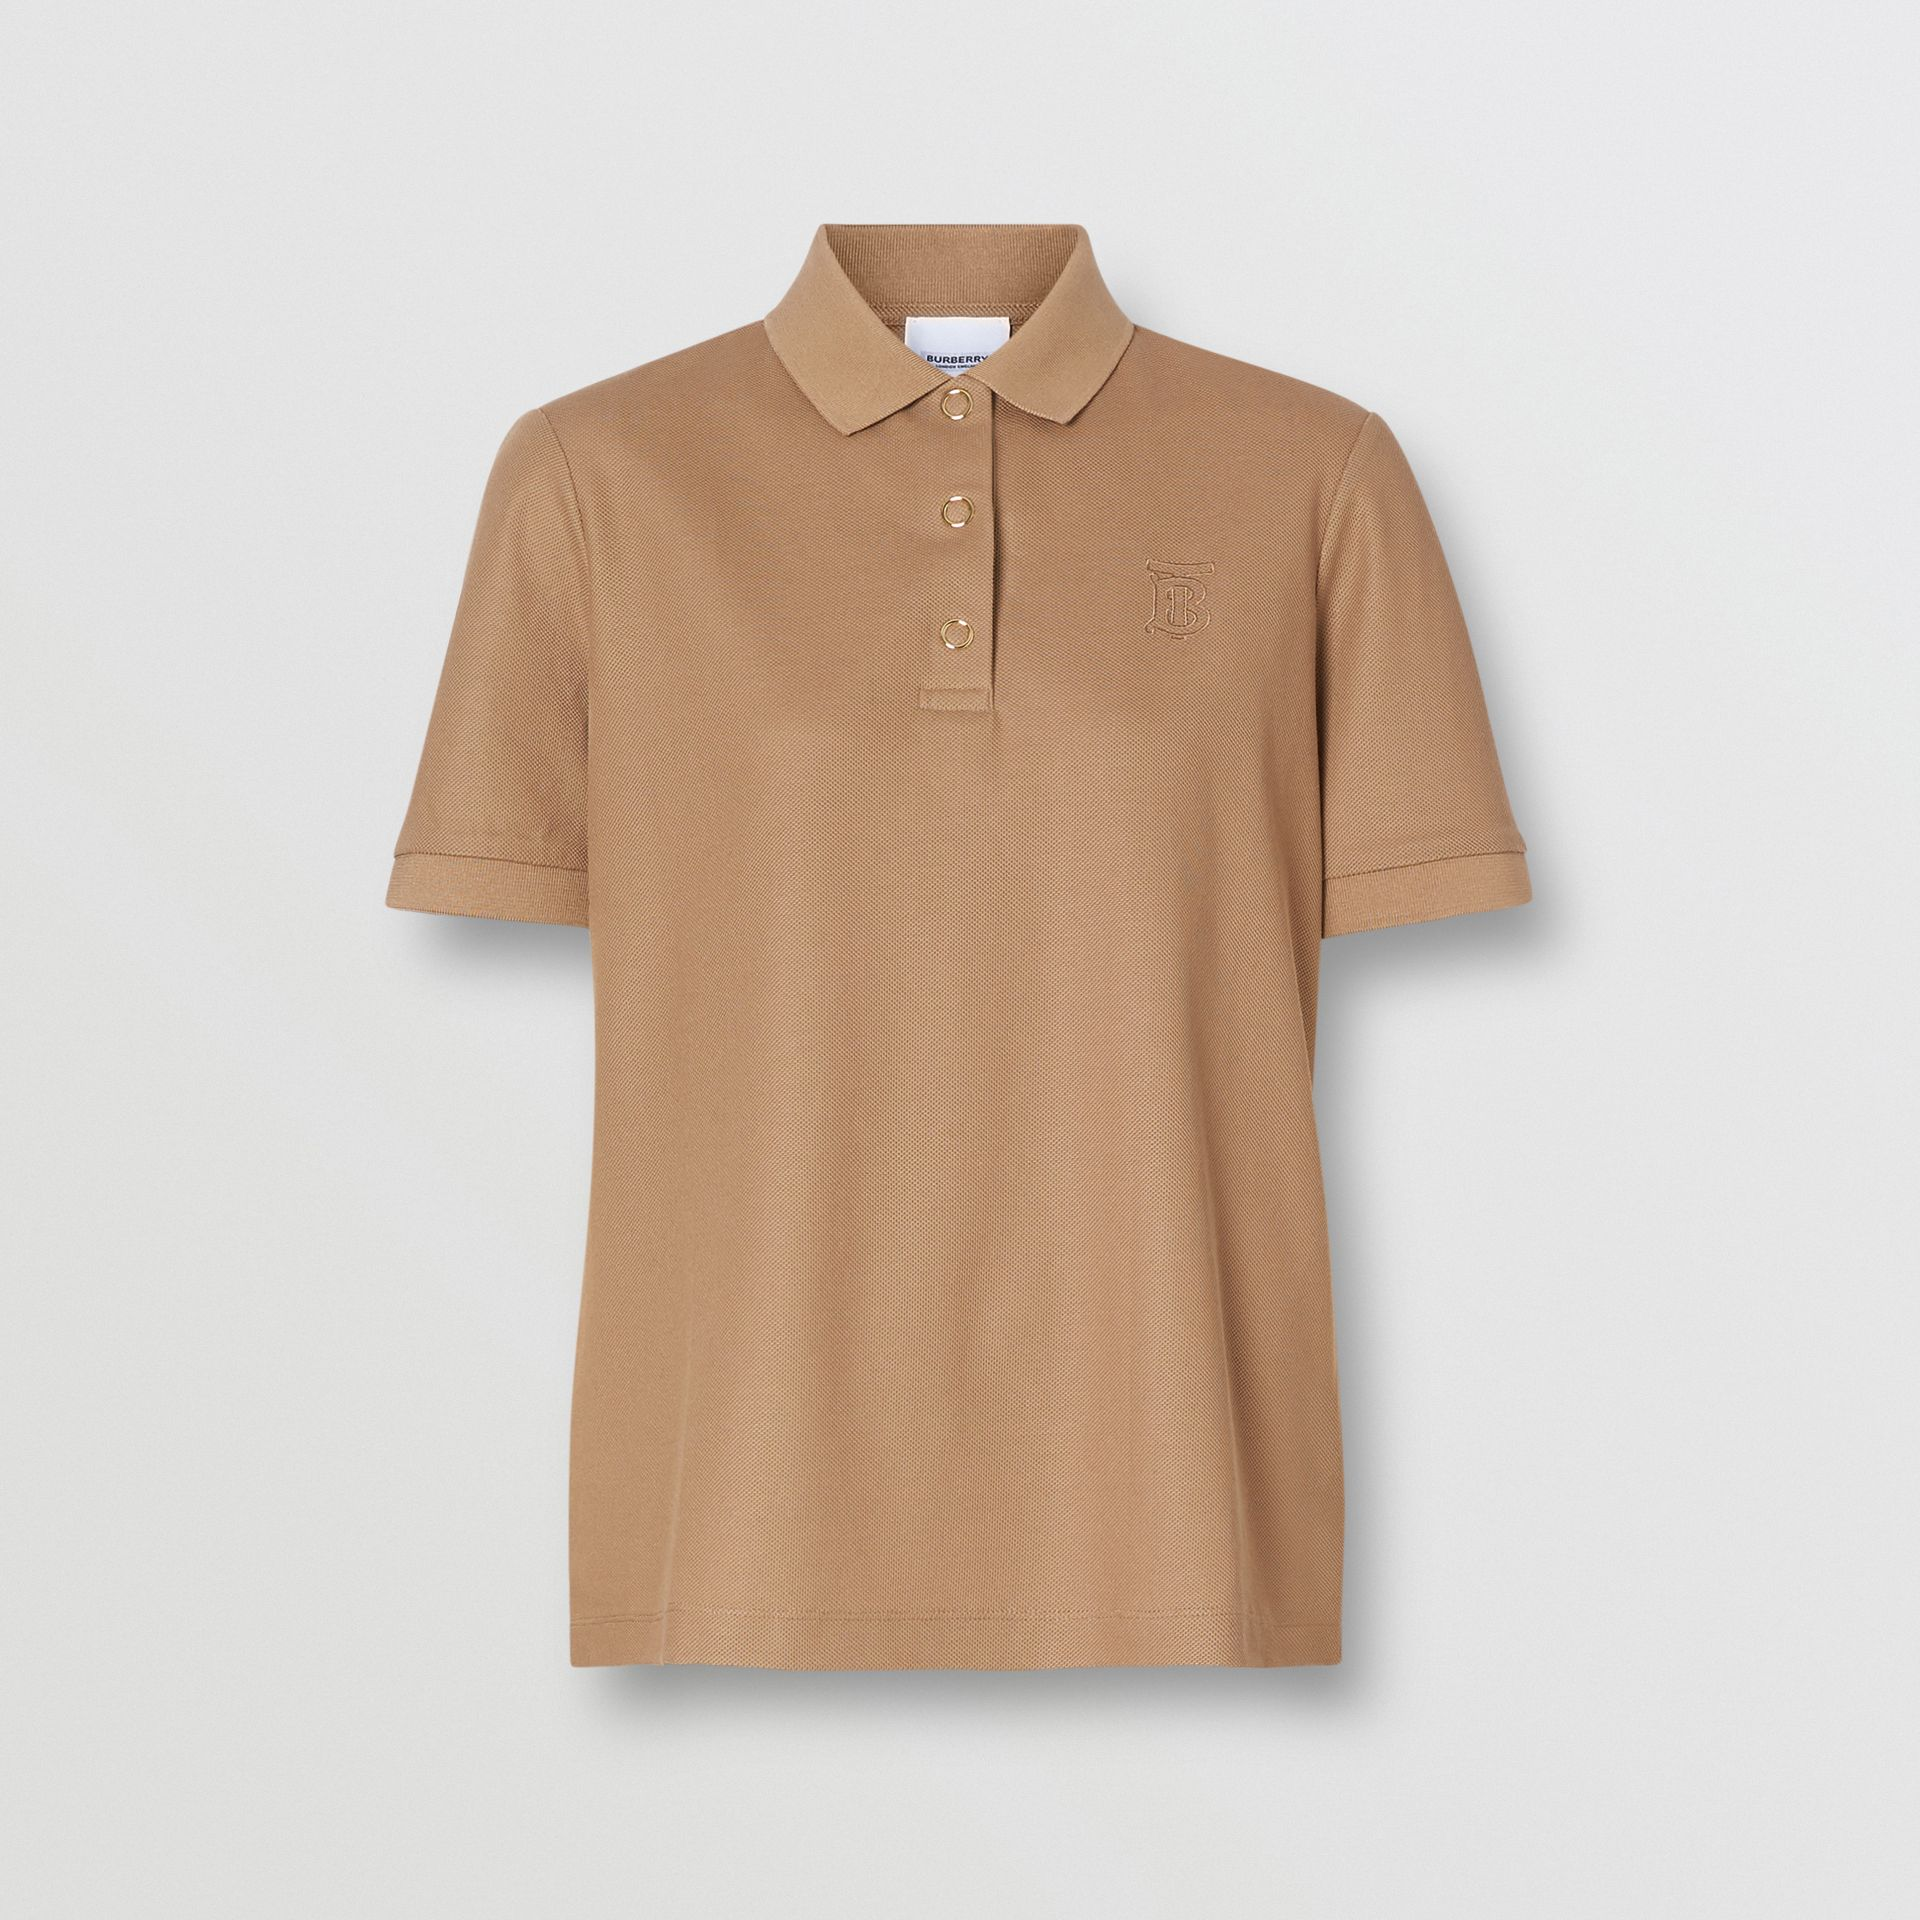 Monogram Motif Cotton Piqué Polo Shirt in Camel - Women | Burberry Singapore - gallery image 3